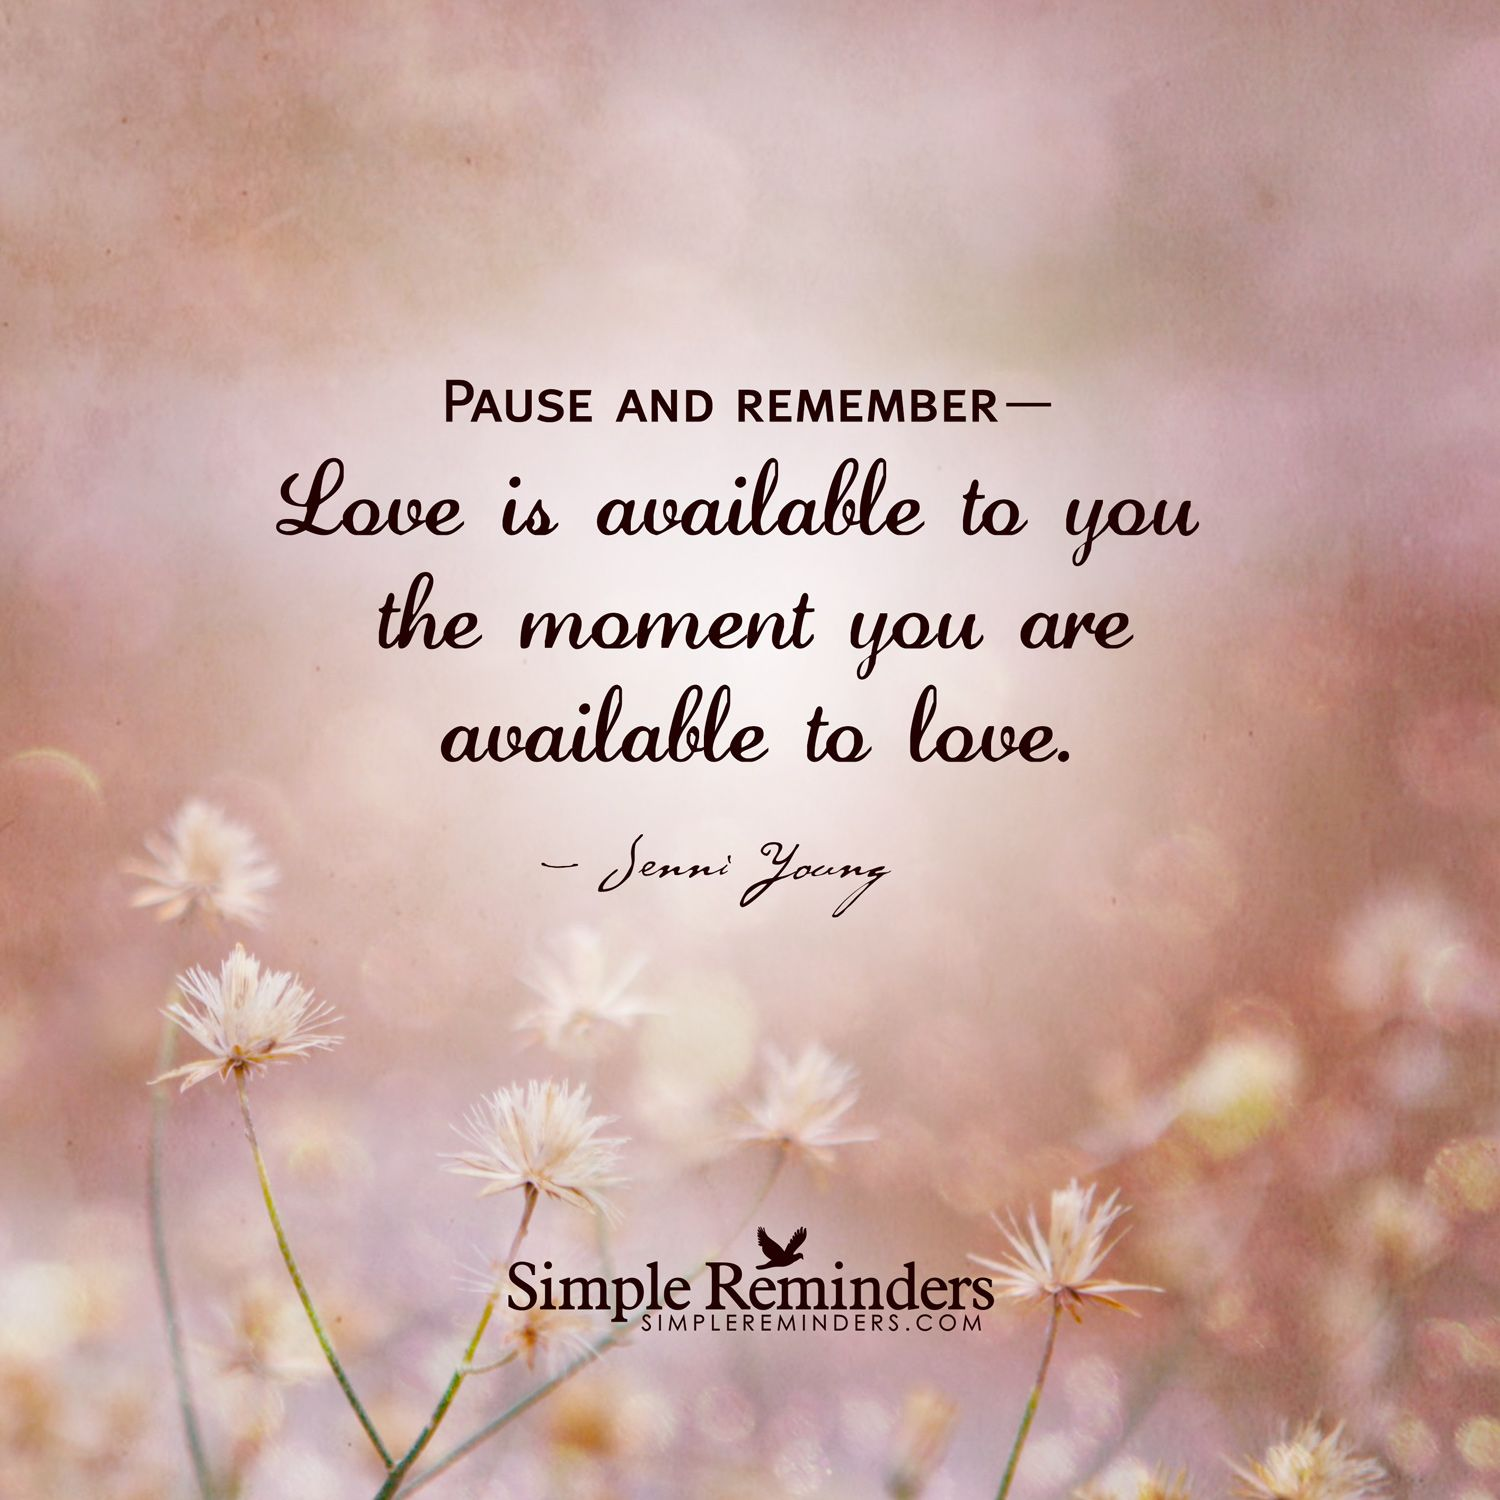 Pause And Remember— Love Is Available To You The Moment